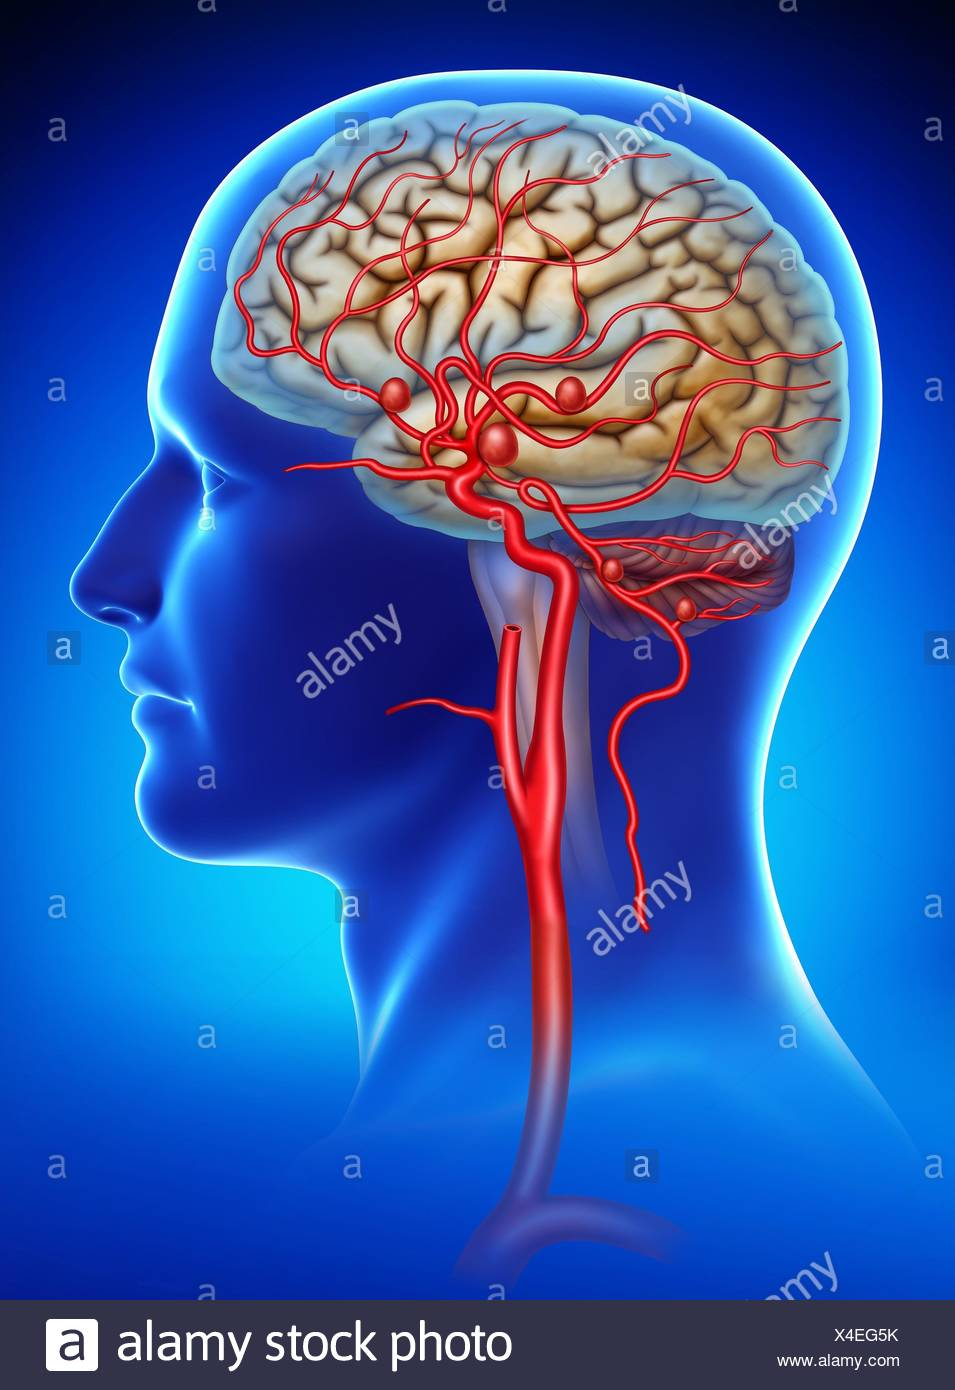 Carotid Artery Stock Photos & Carotid Artery Stock Images - Alamy